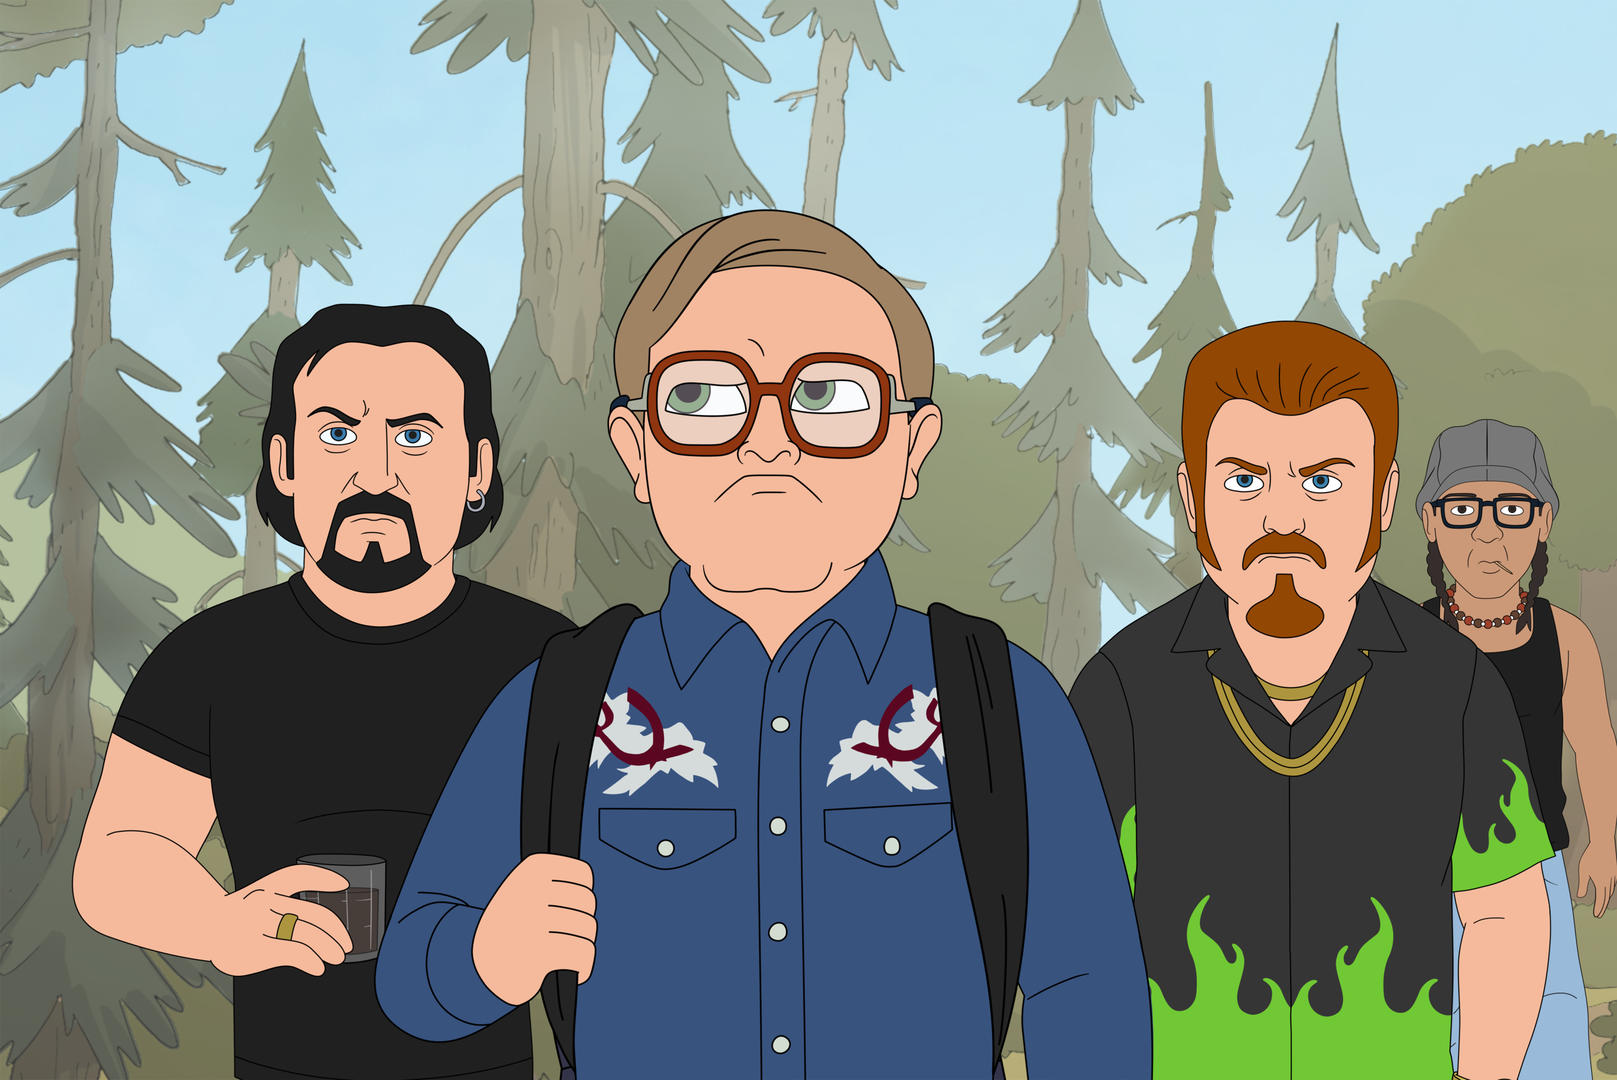 Trailer Park Boys: The Animated Series (2019)